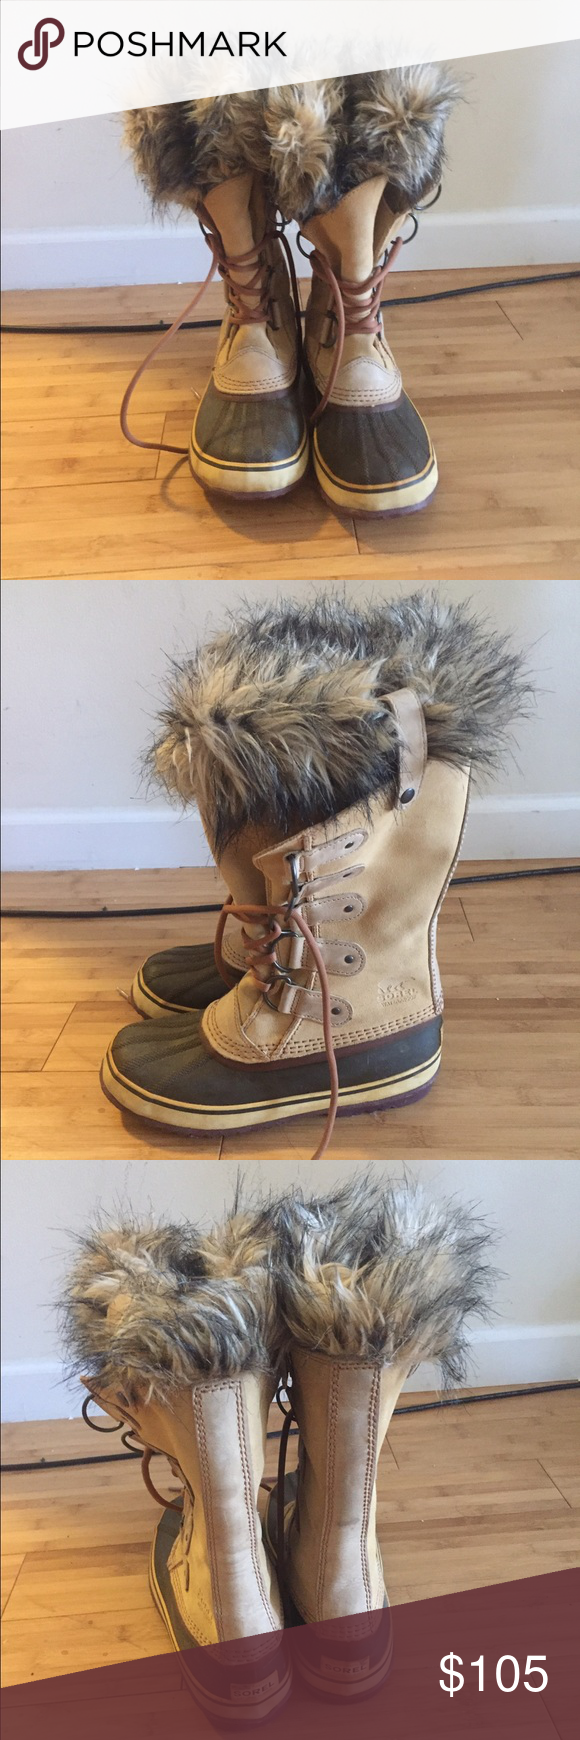 Lightly worn Sorel Joan of Arctic boot Waterproof leather upper with faux fur snow cuff and Sean-sealed waterproof construction. Great boot for heavy snow days. Sorel Shoes Winter & Rain Boots